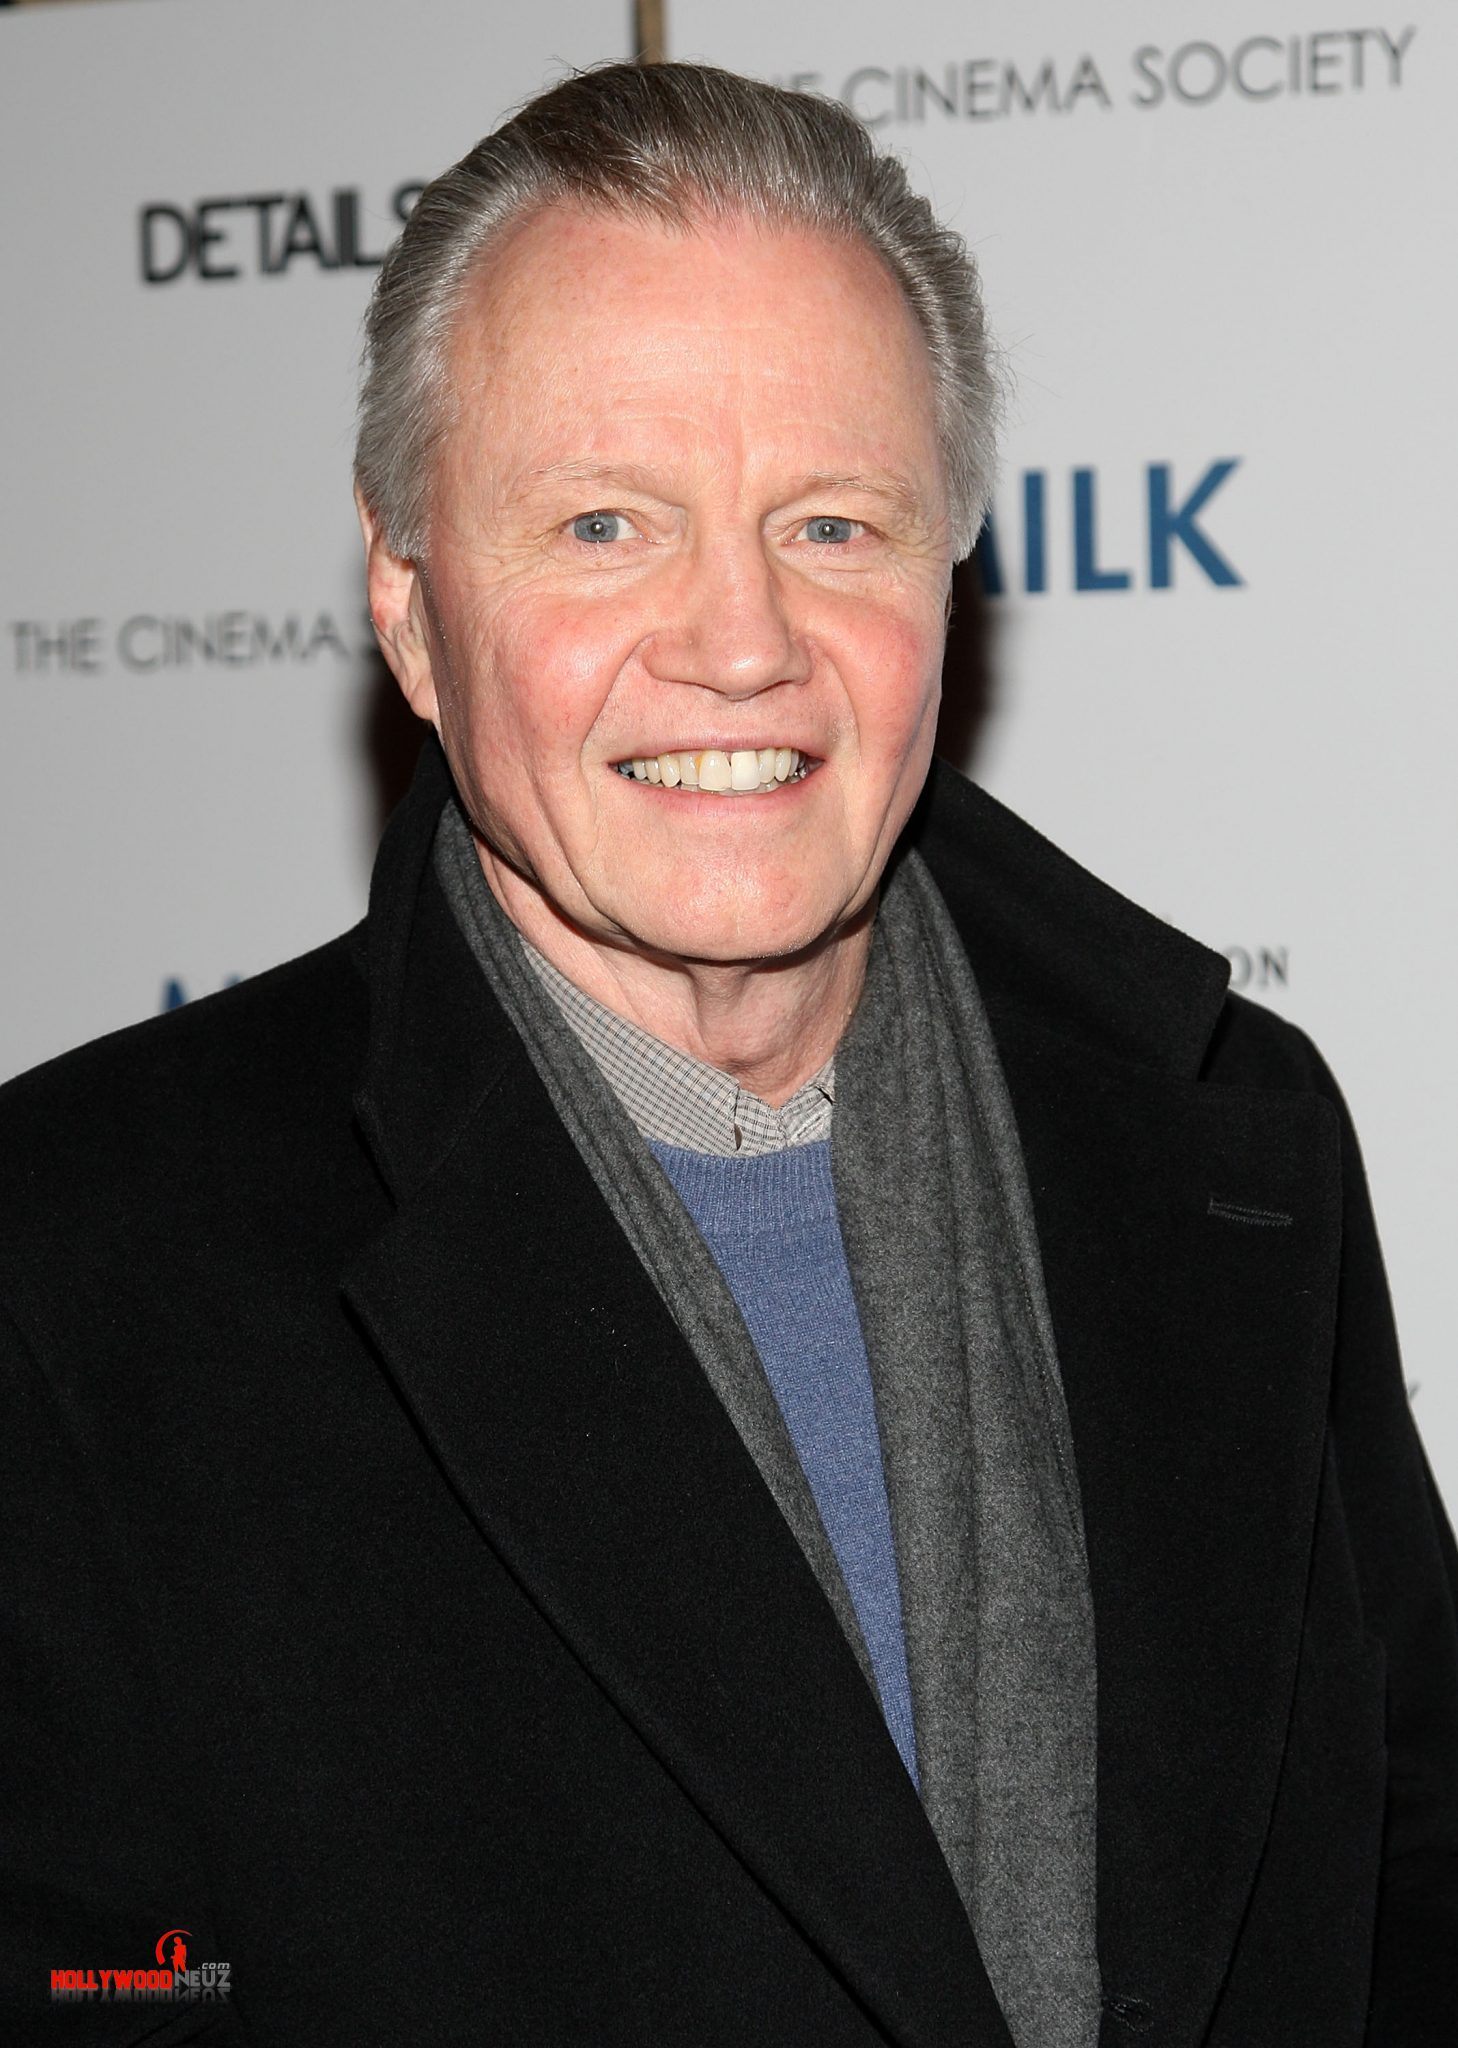 actor, bio, biography, celebrity, girlfriend, hollywood, Jon Voight, male, profile, wife